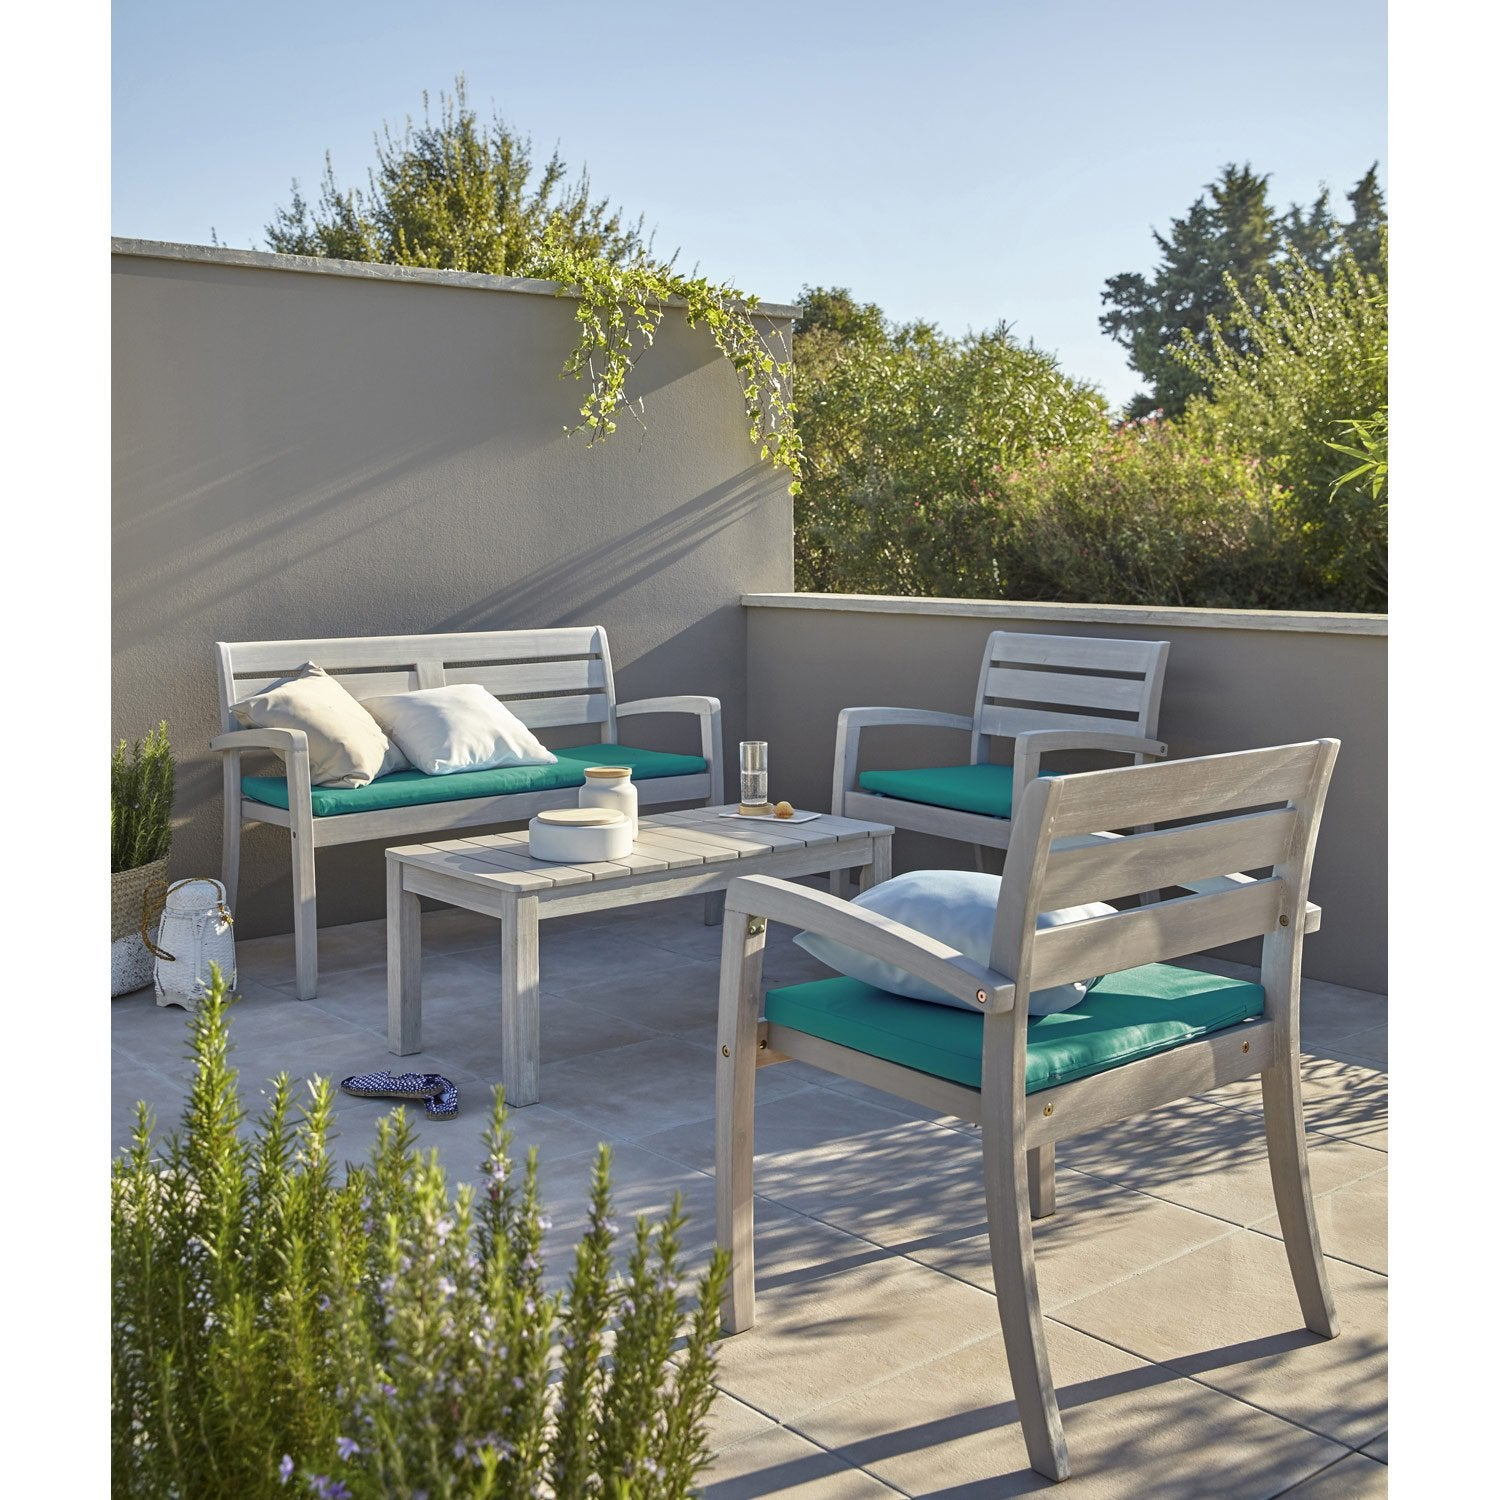 Salon de jardin portofino bois naturel 1 table 2 - Sillones de mimbre leroy merlin ...